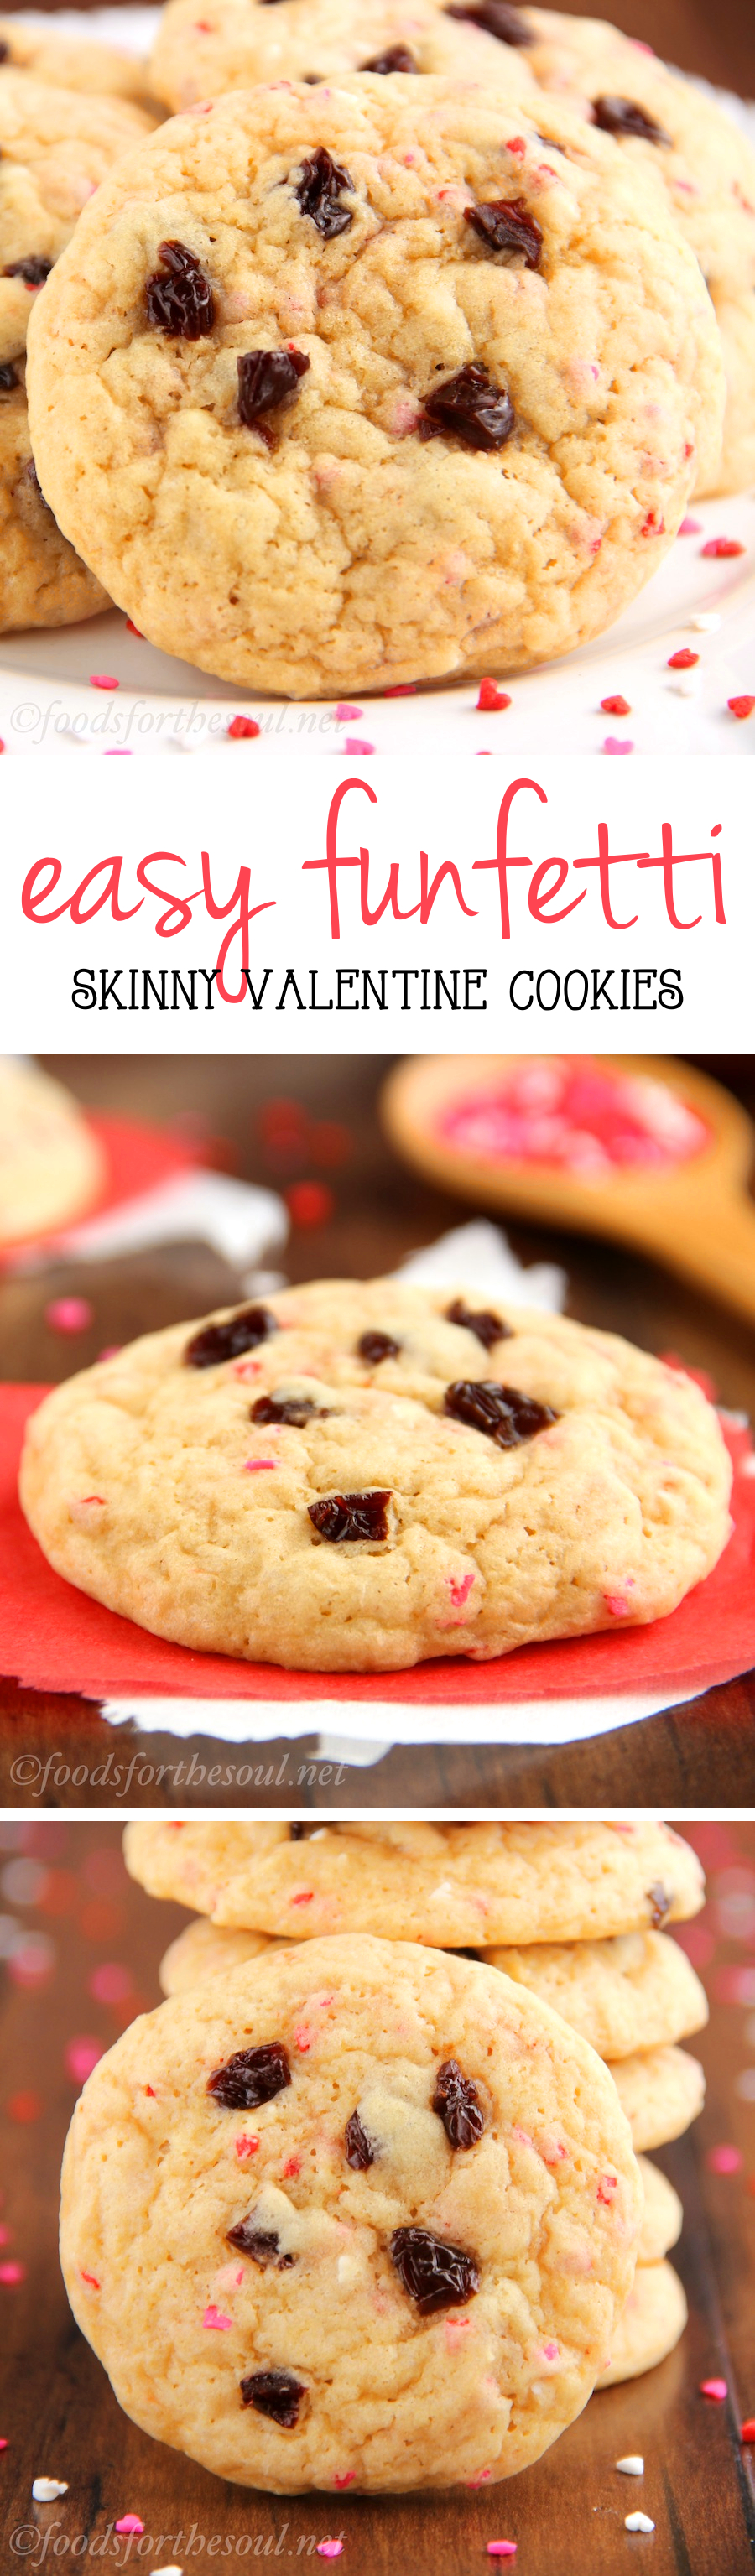 These easy Valentine's Day cookies are unbelievably soft! And they taste SO buttery -- you can't even tell they're skinny!